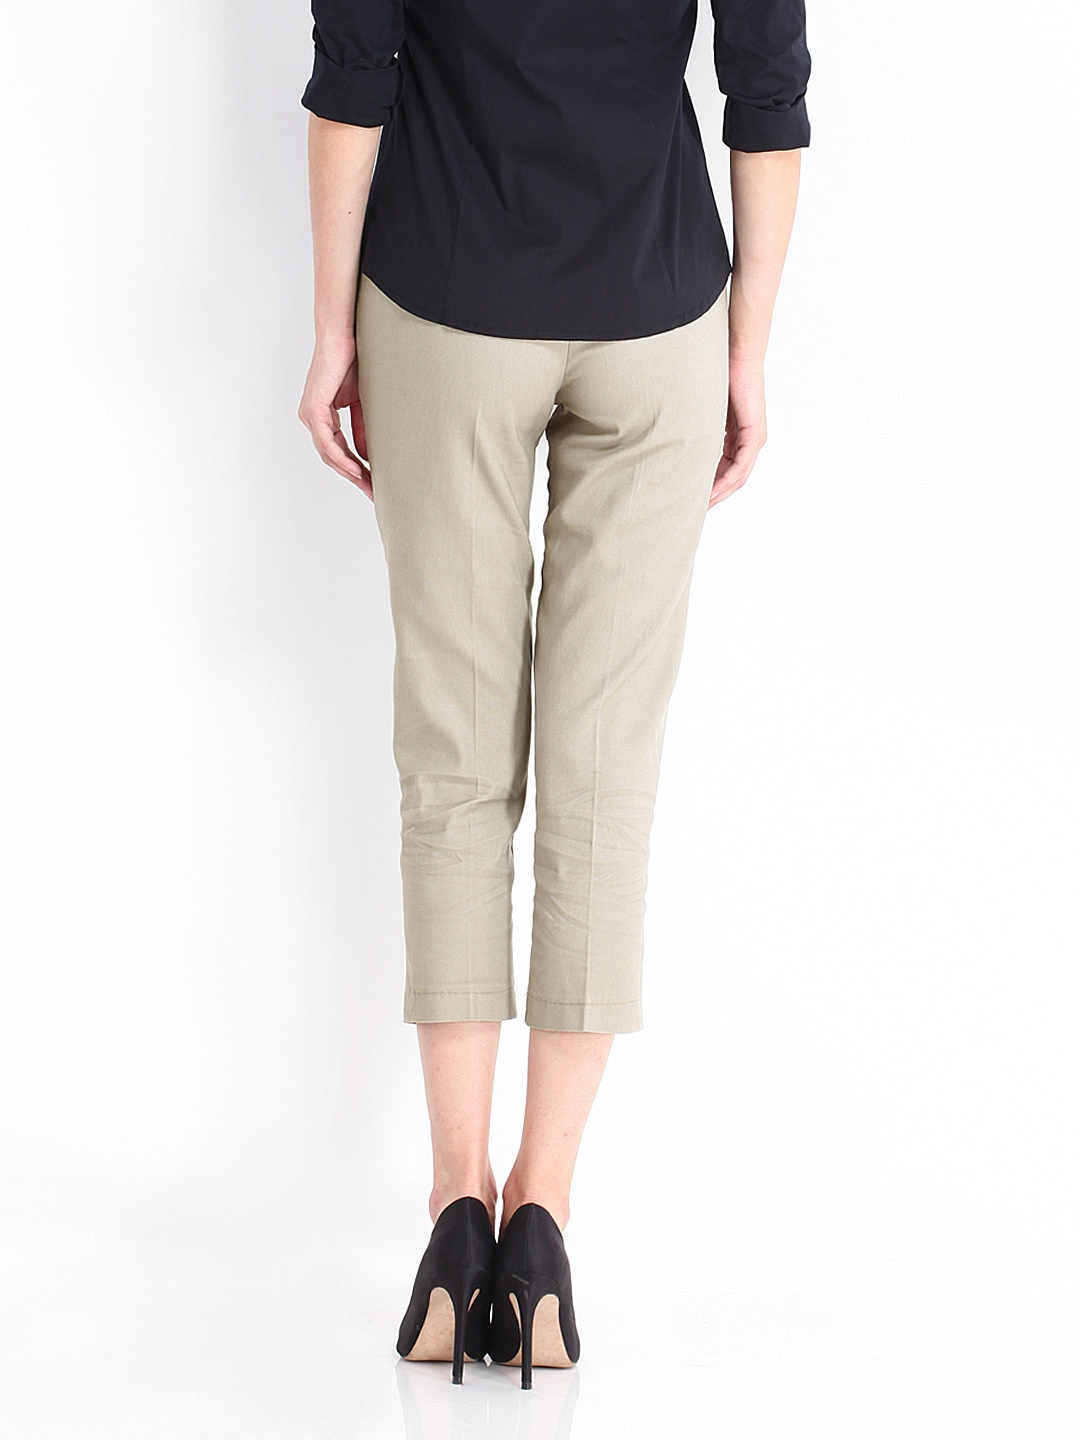 Womens Crop Trouser Benetton